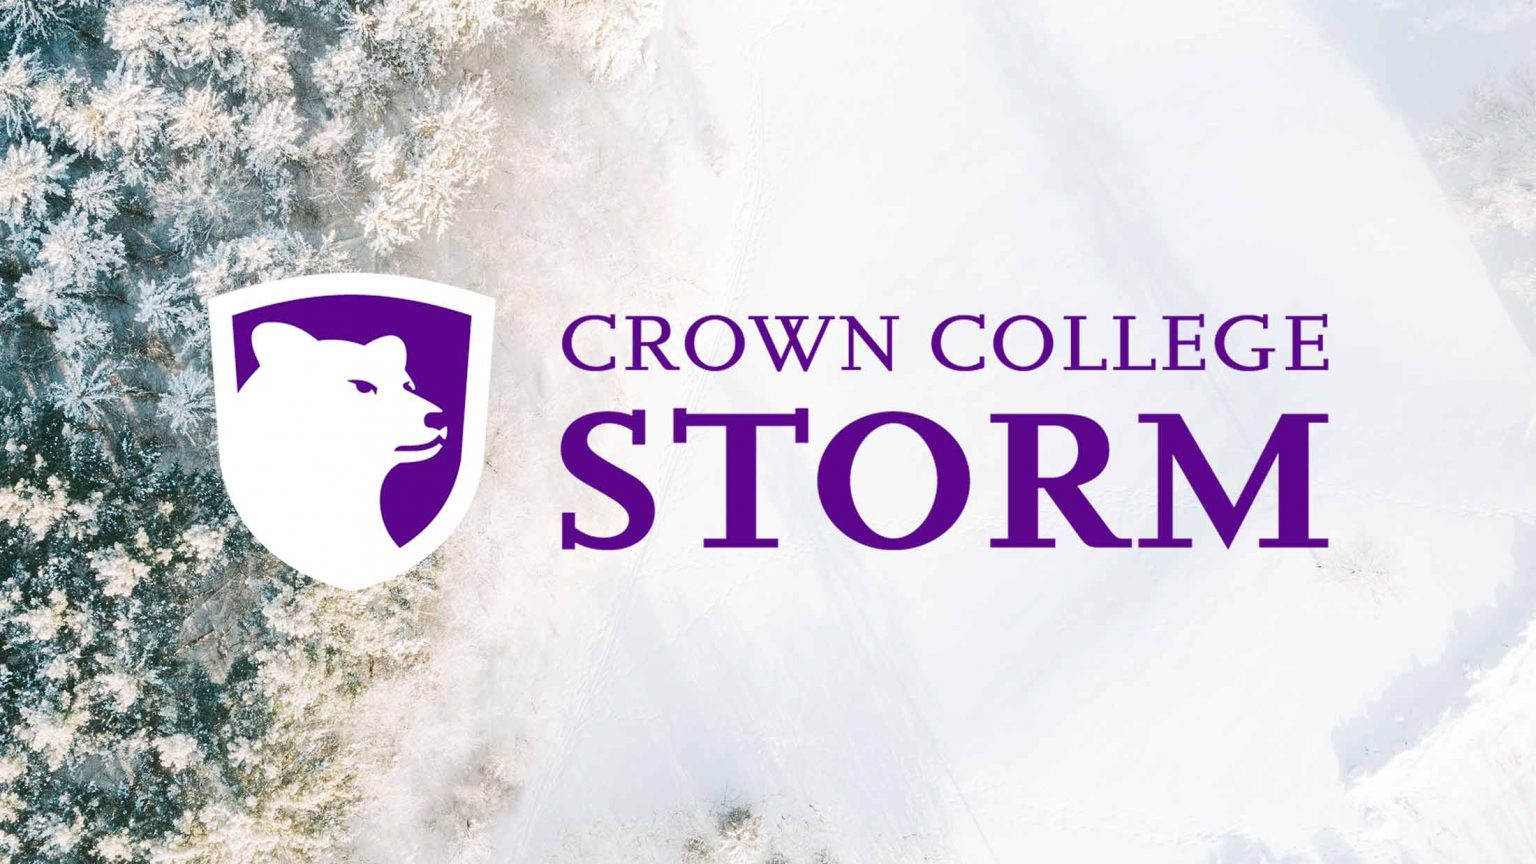 crown_college_storm 1536x864